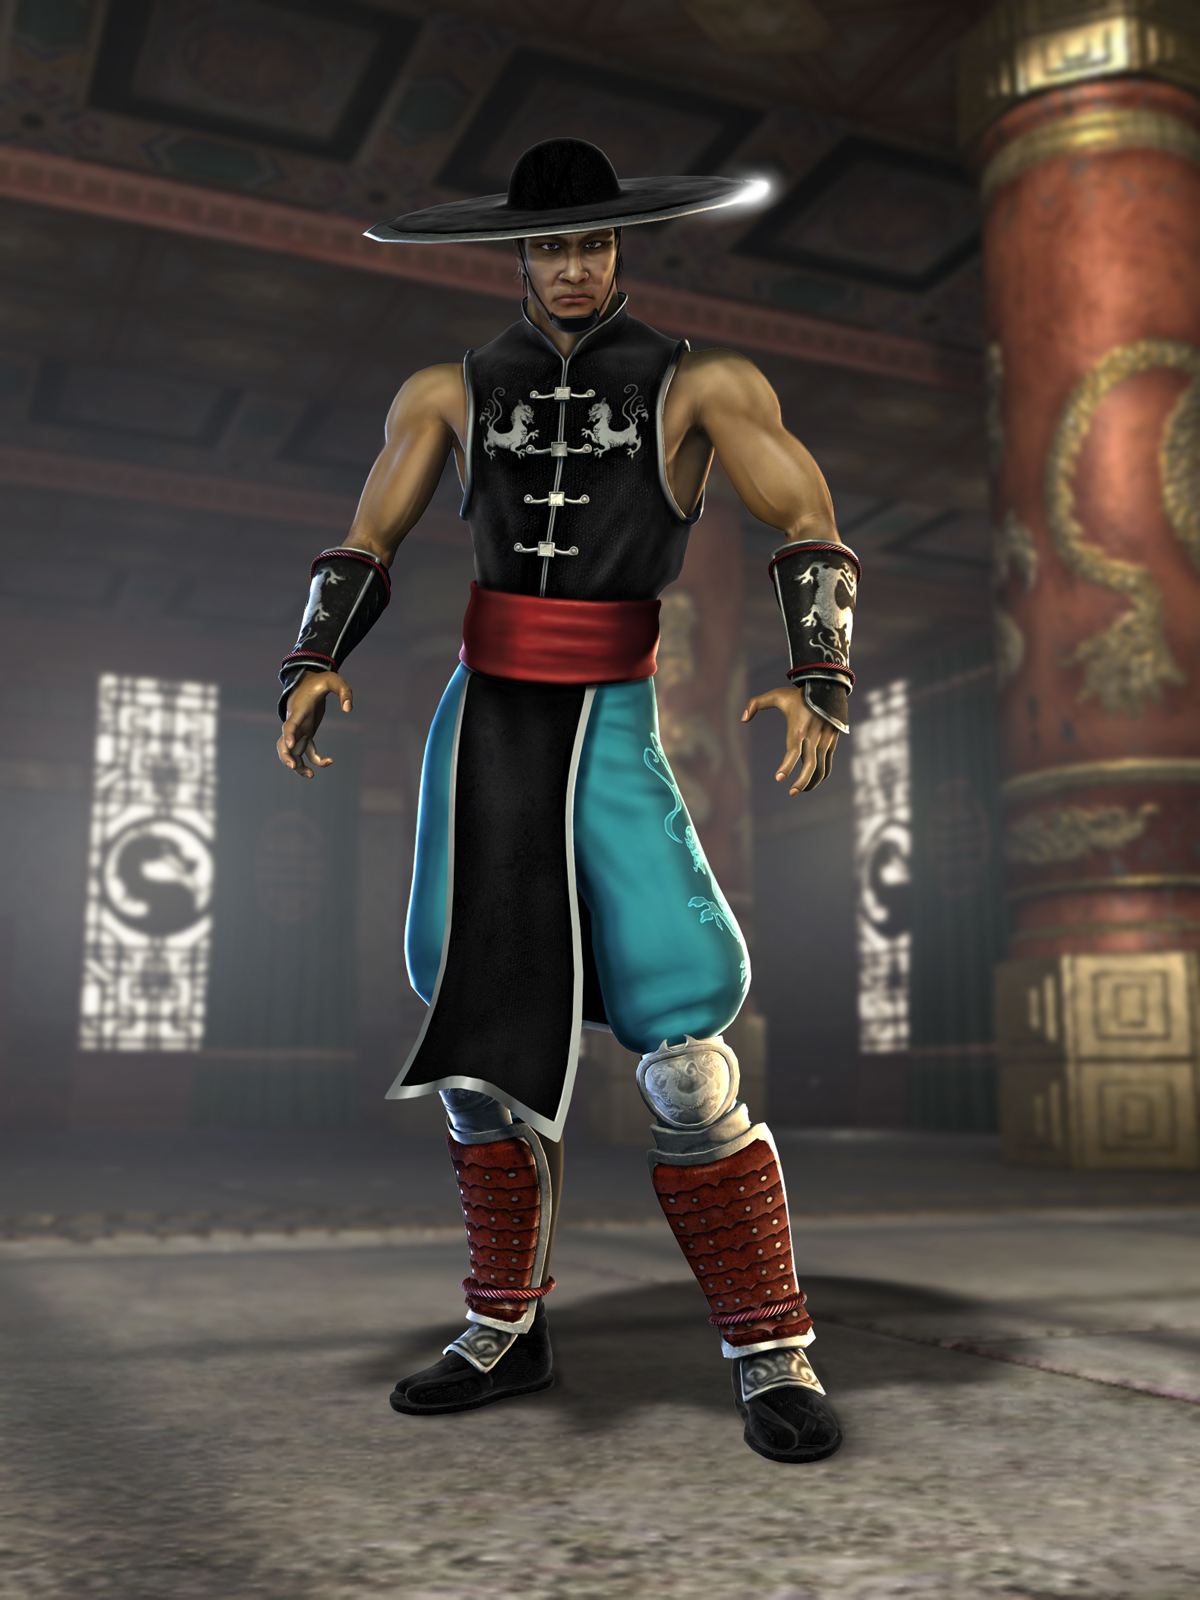 kung lao | made up characters wiki | fandom poweredwikia